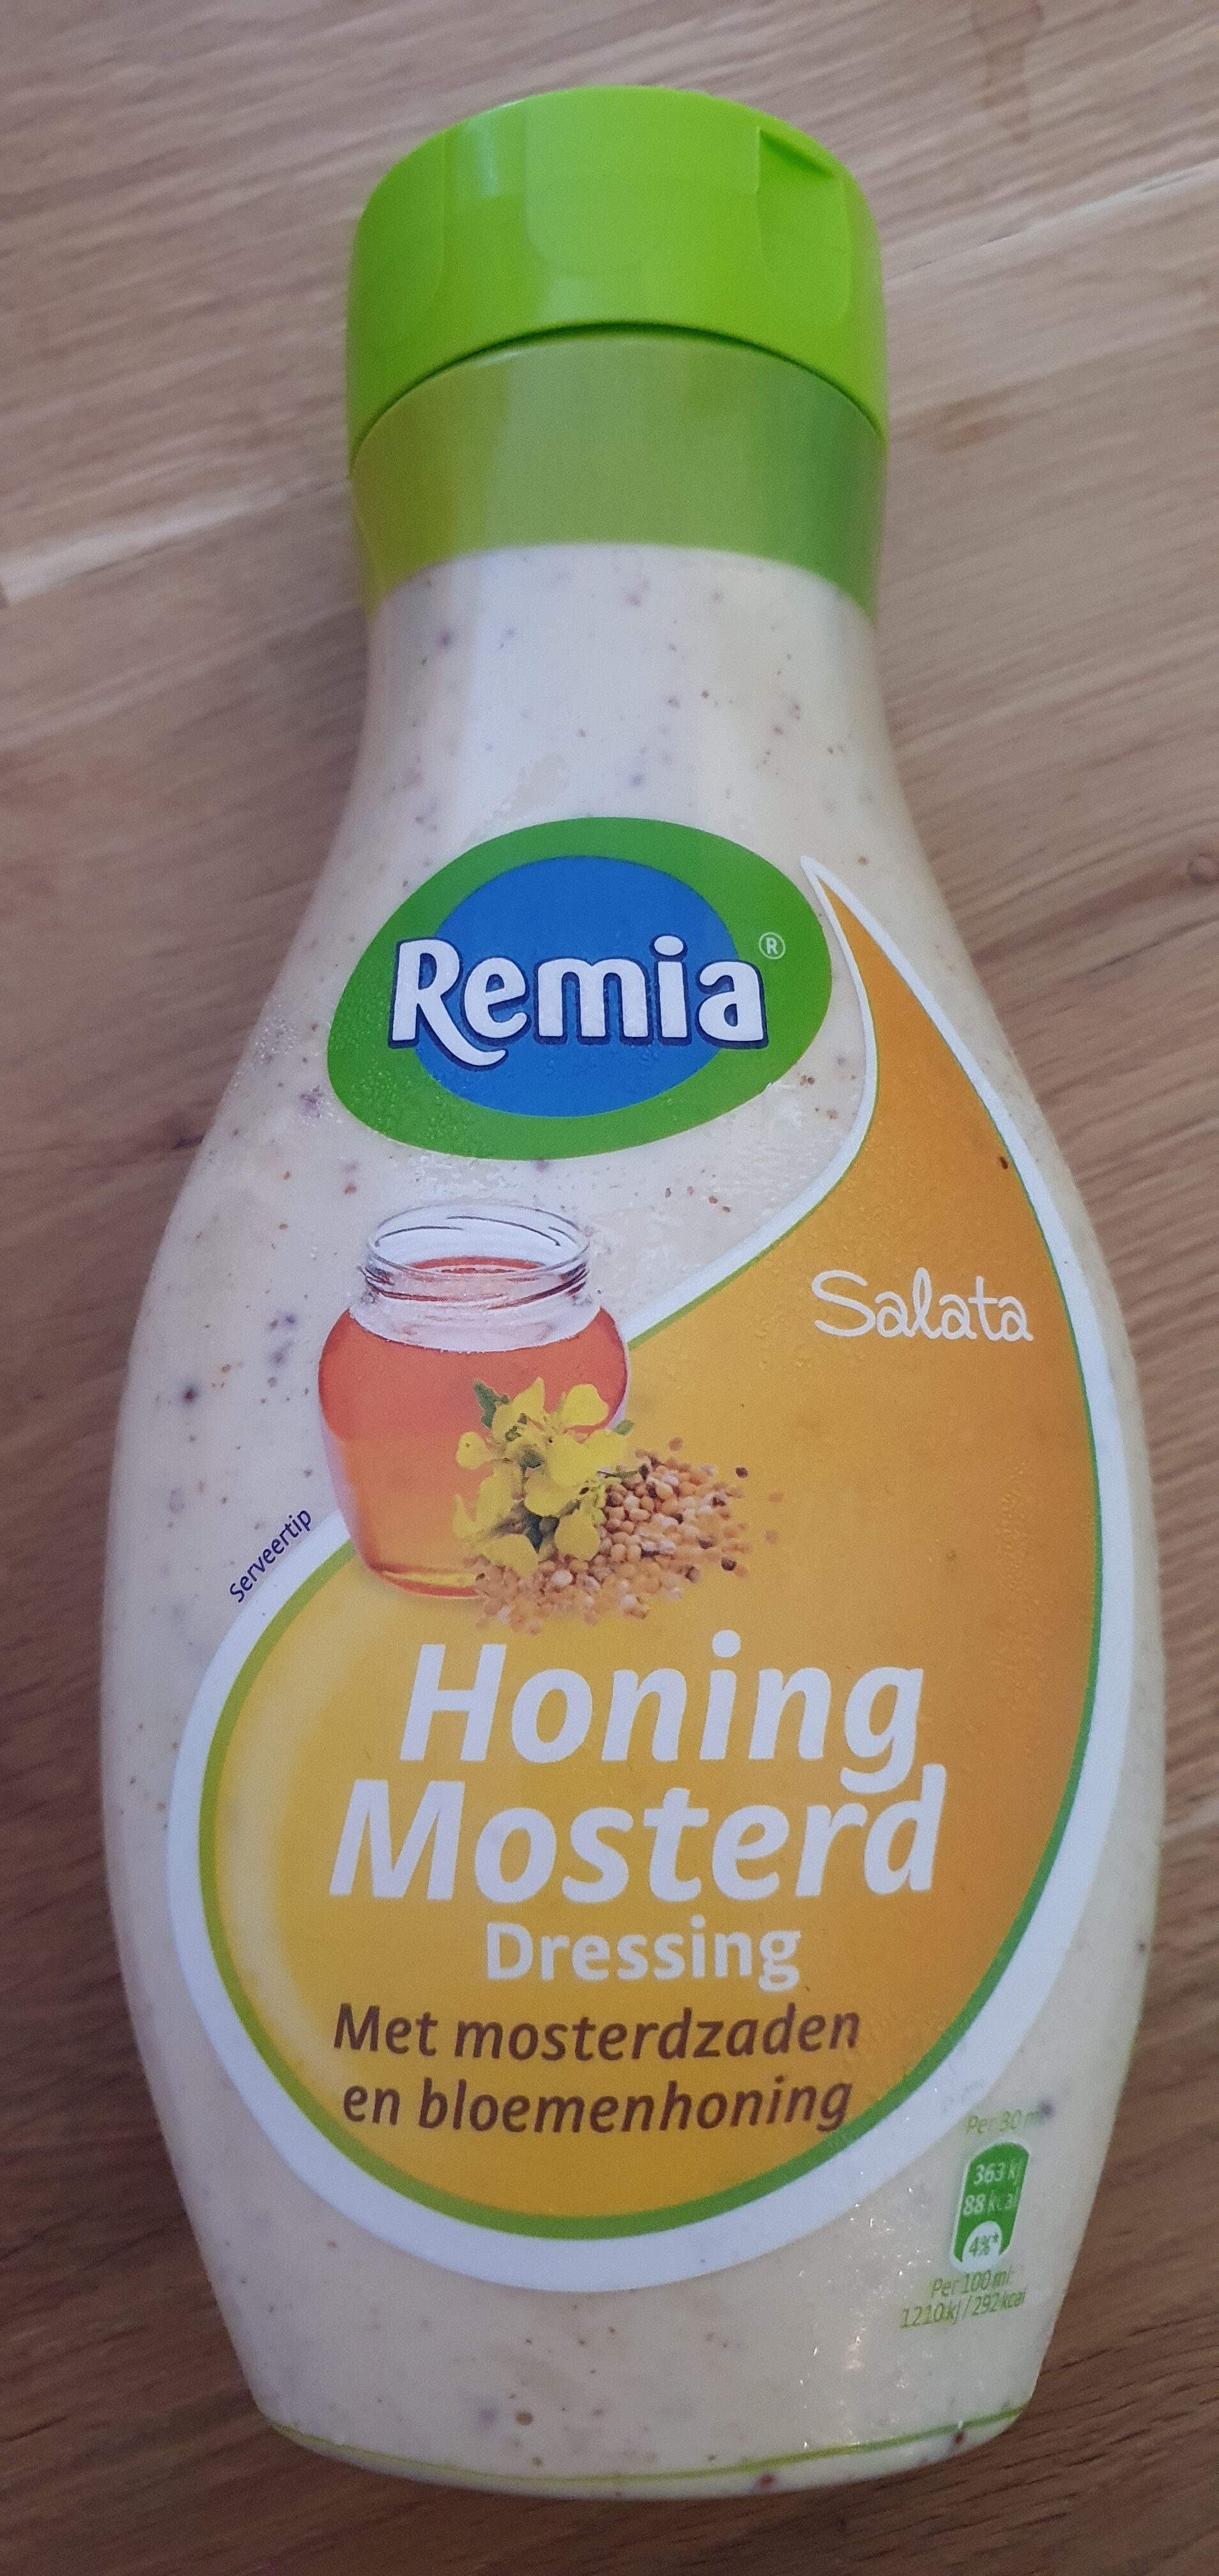 Remia Salata Honing-mosterd - Product - nl